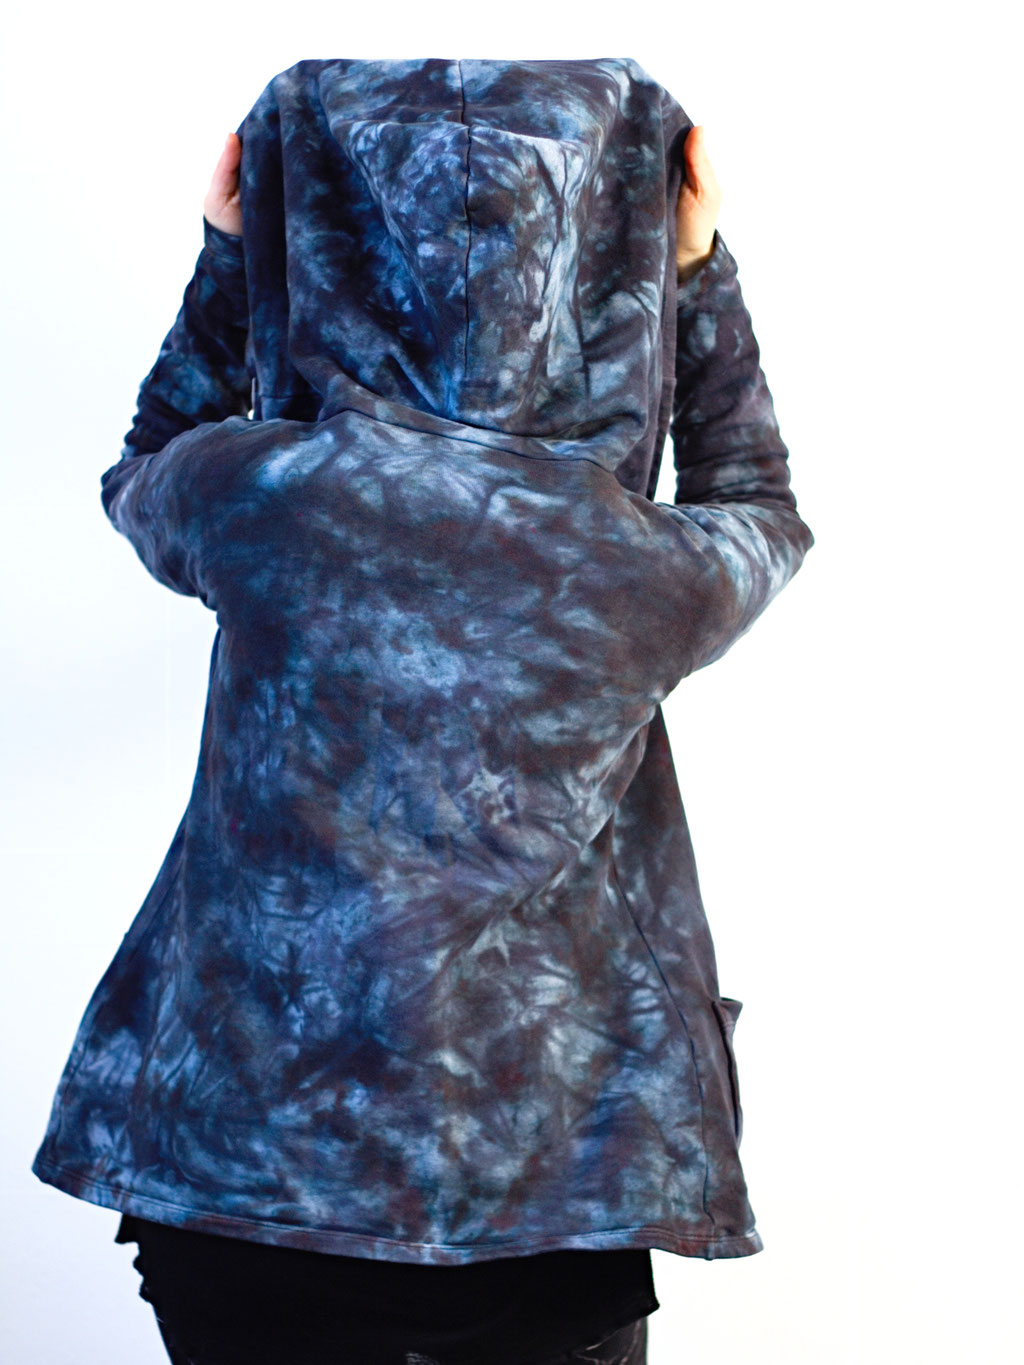 Re-dyed and repaired cardigan - black, purple and blue on the back and hood - Zebraspider DIY Anti-Fashion Blog